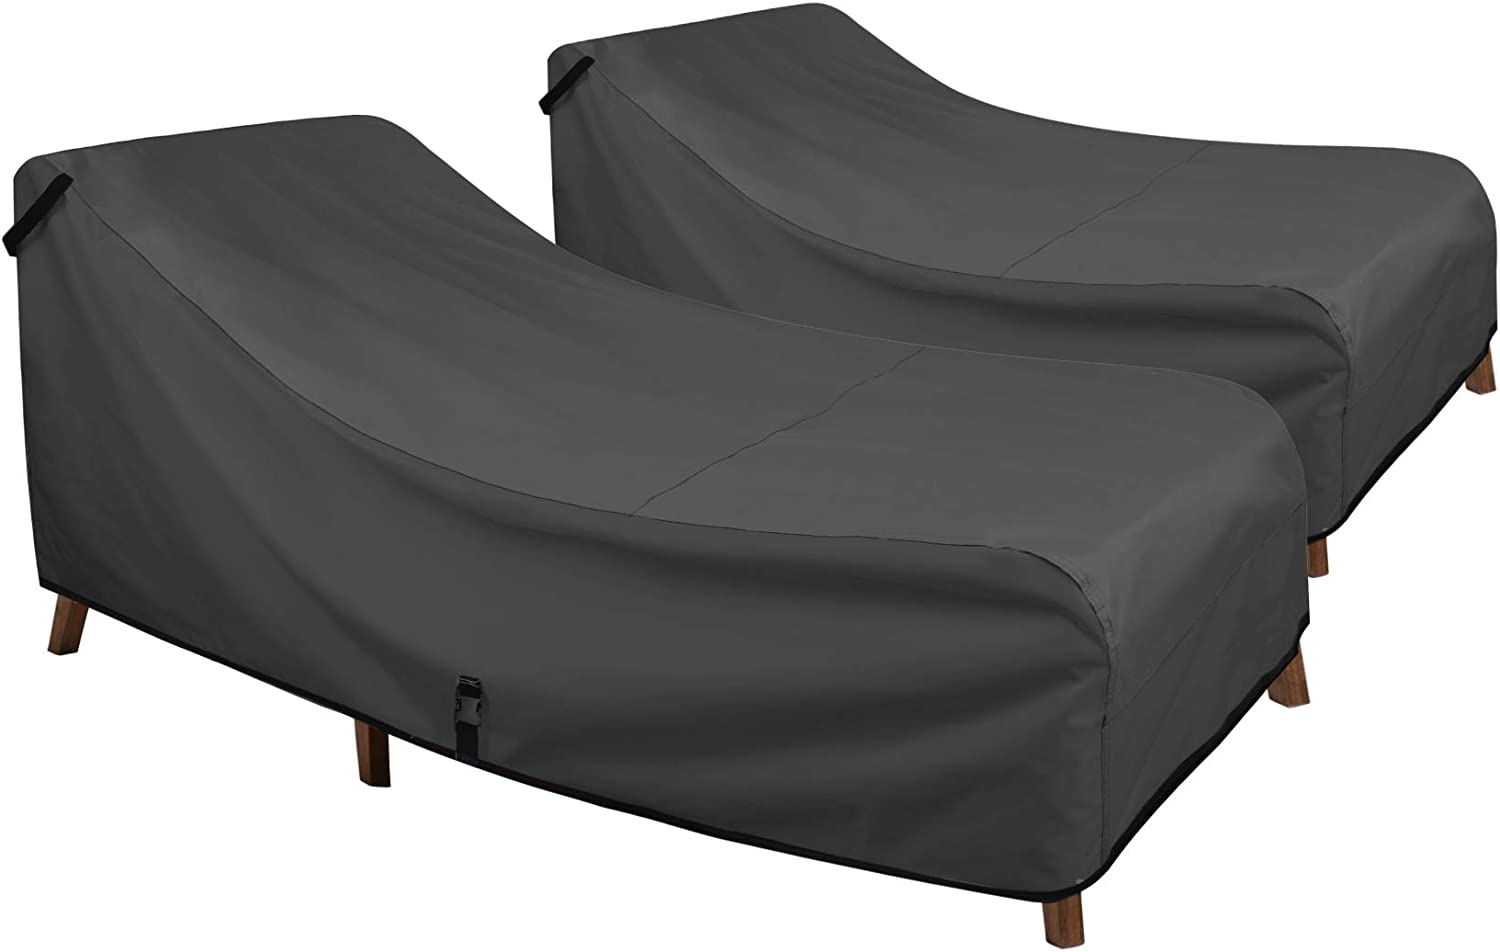 Porch Shield Patio Chaise Lounge Chair Cover - Waterproof Outdoor Pool Chair Cover 2 Pack - 68W x 30D x 30H inch, Black